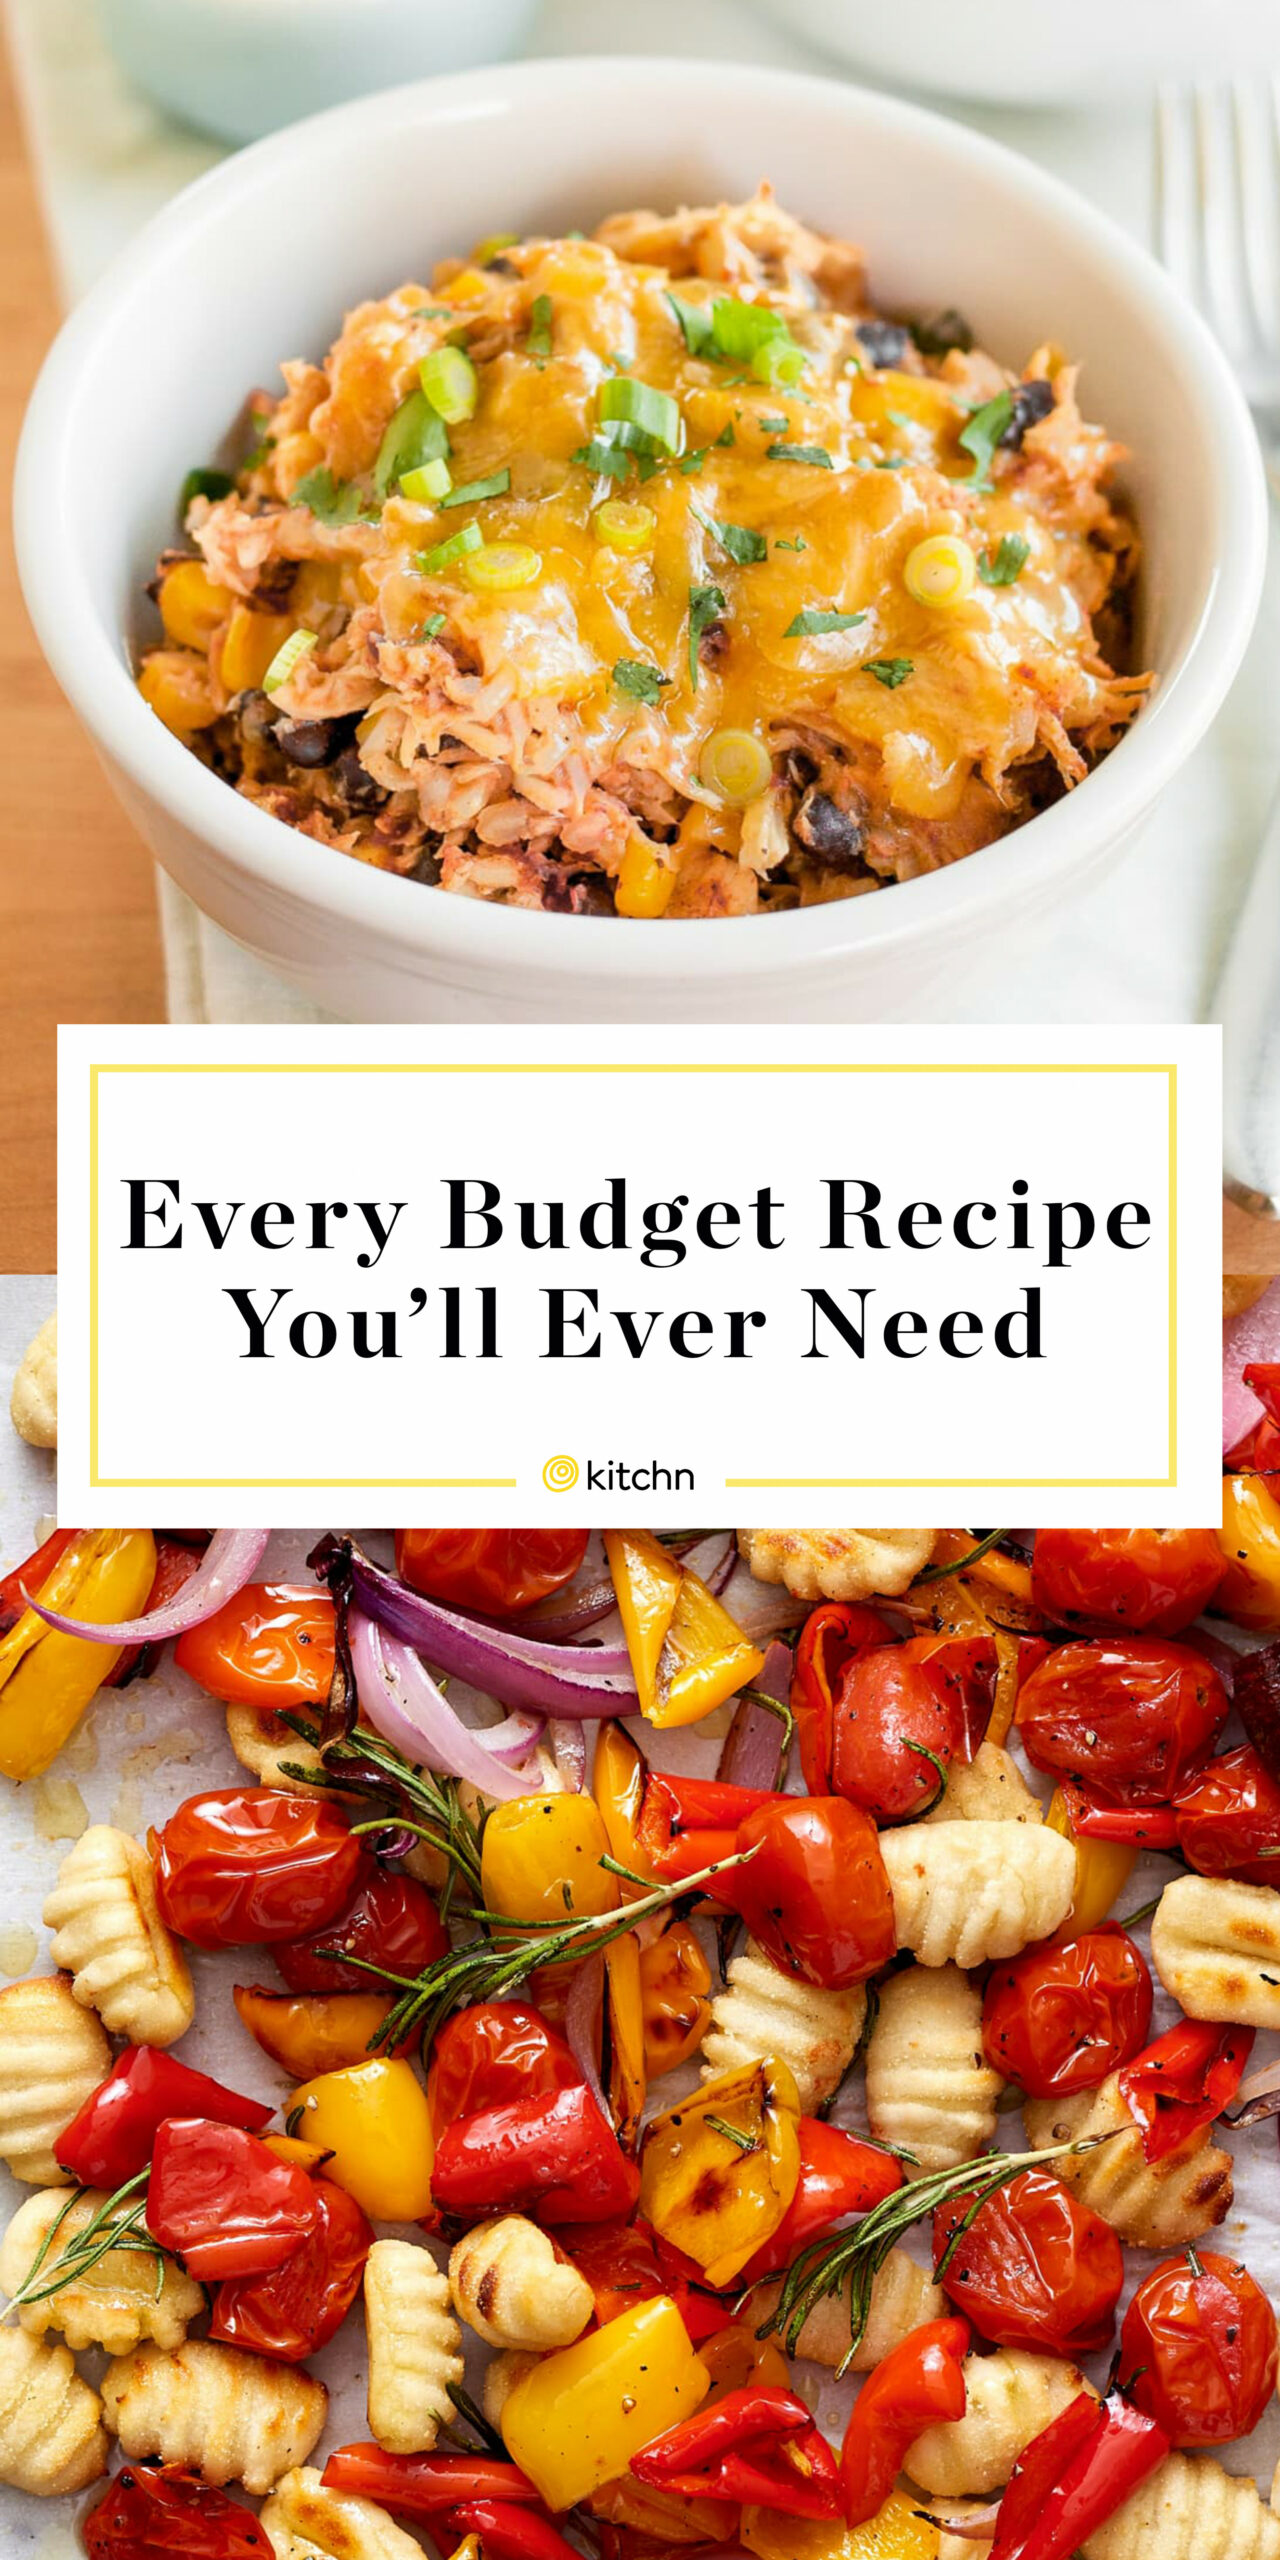 12 Dinners to Make on a Budget | Kitchn - food recipes on a budget